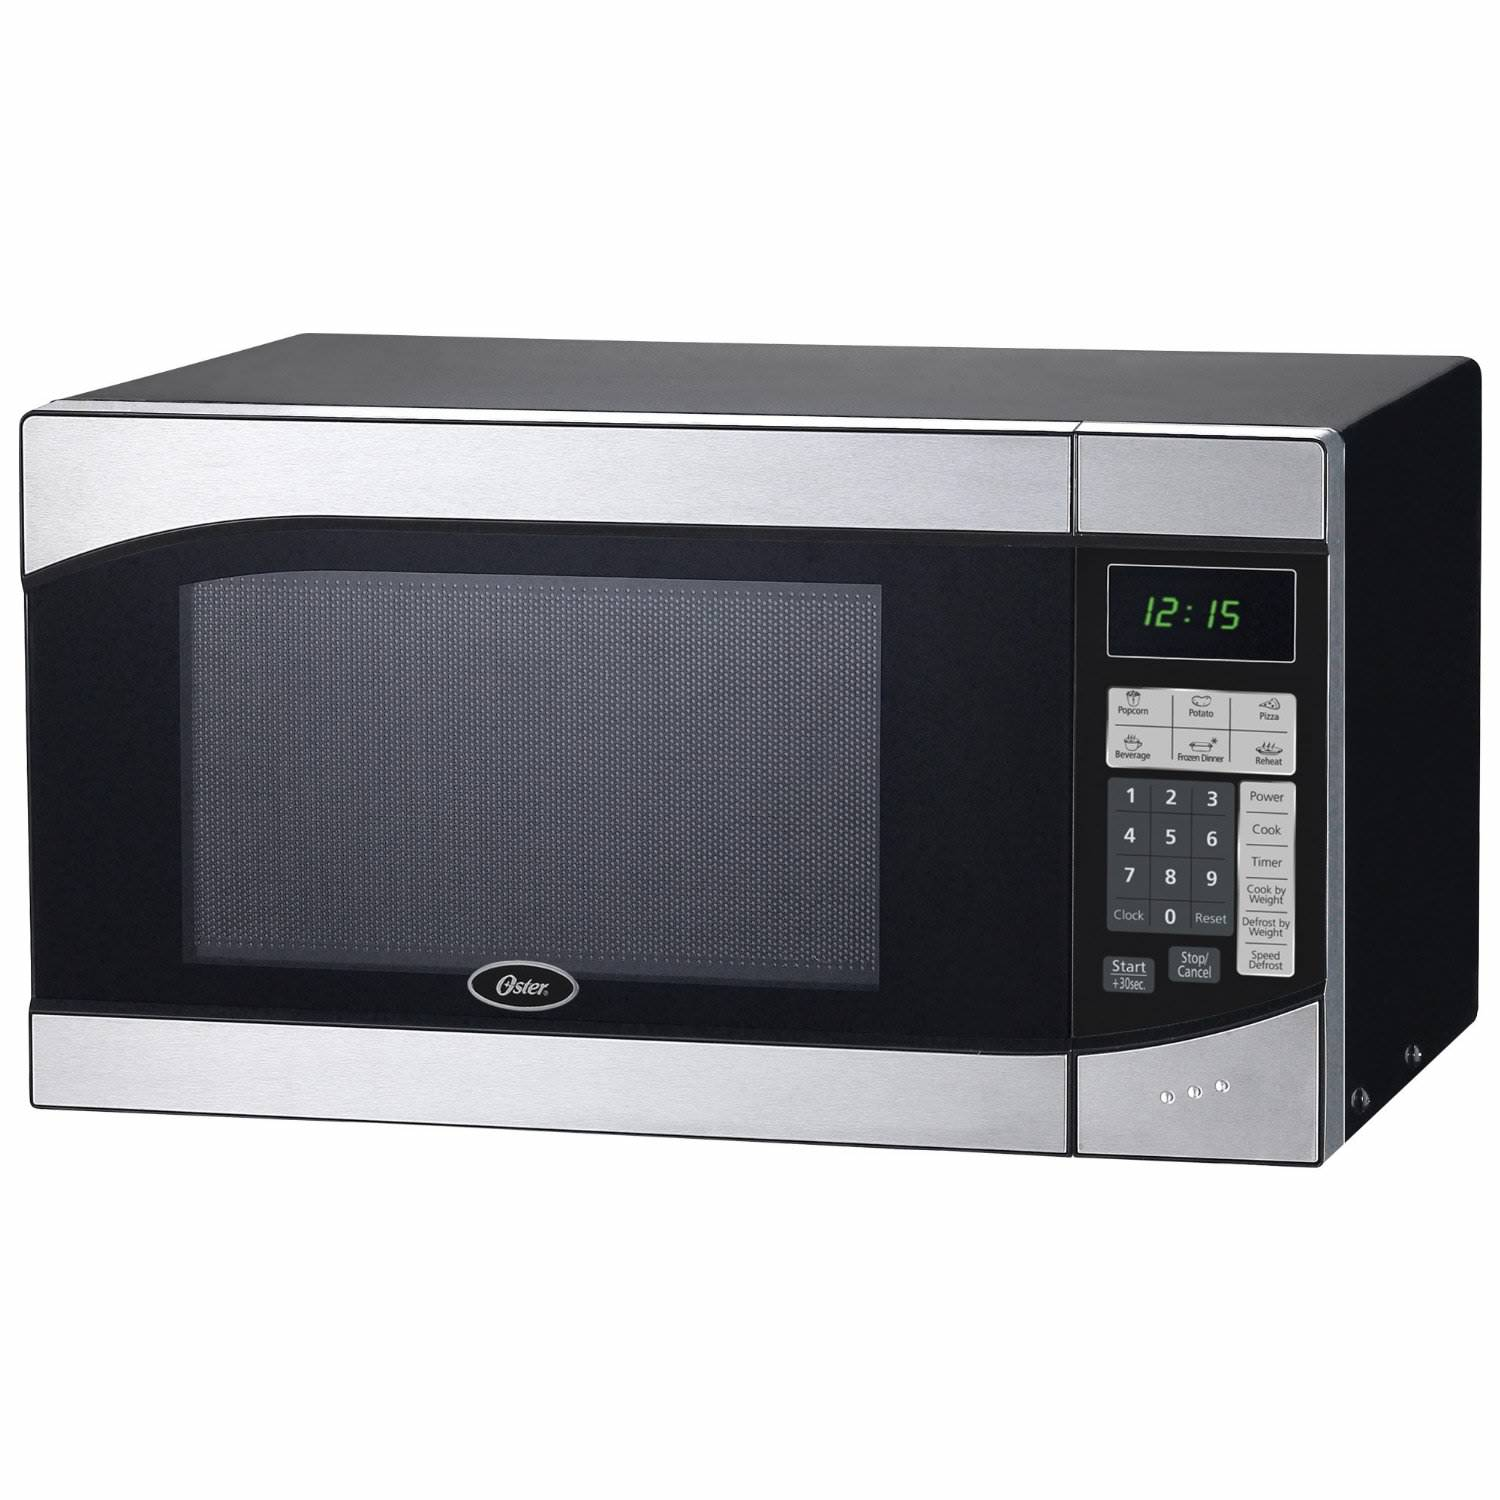 Countertop Microwave Convection Ovens Kitchenaid Microwave Kitchenaid Microwave Convection Oven